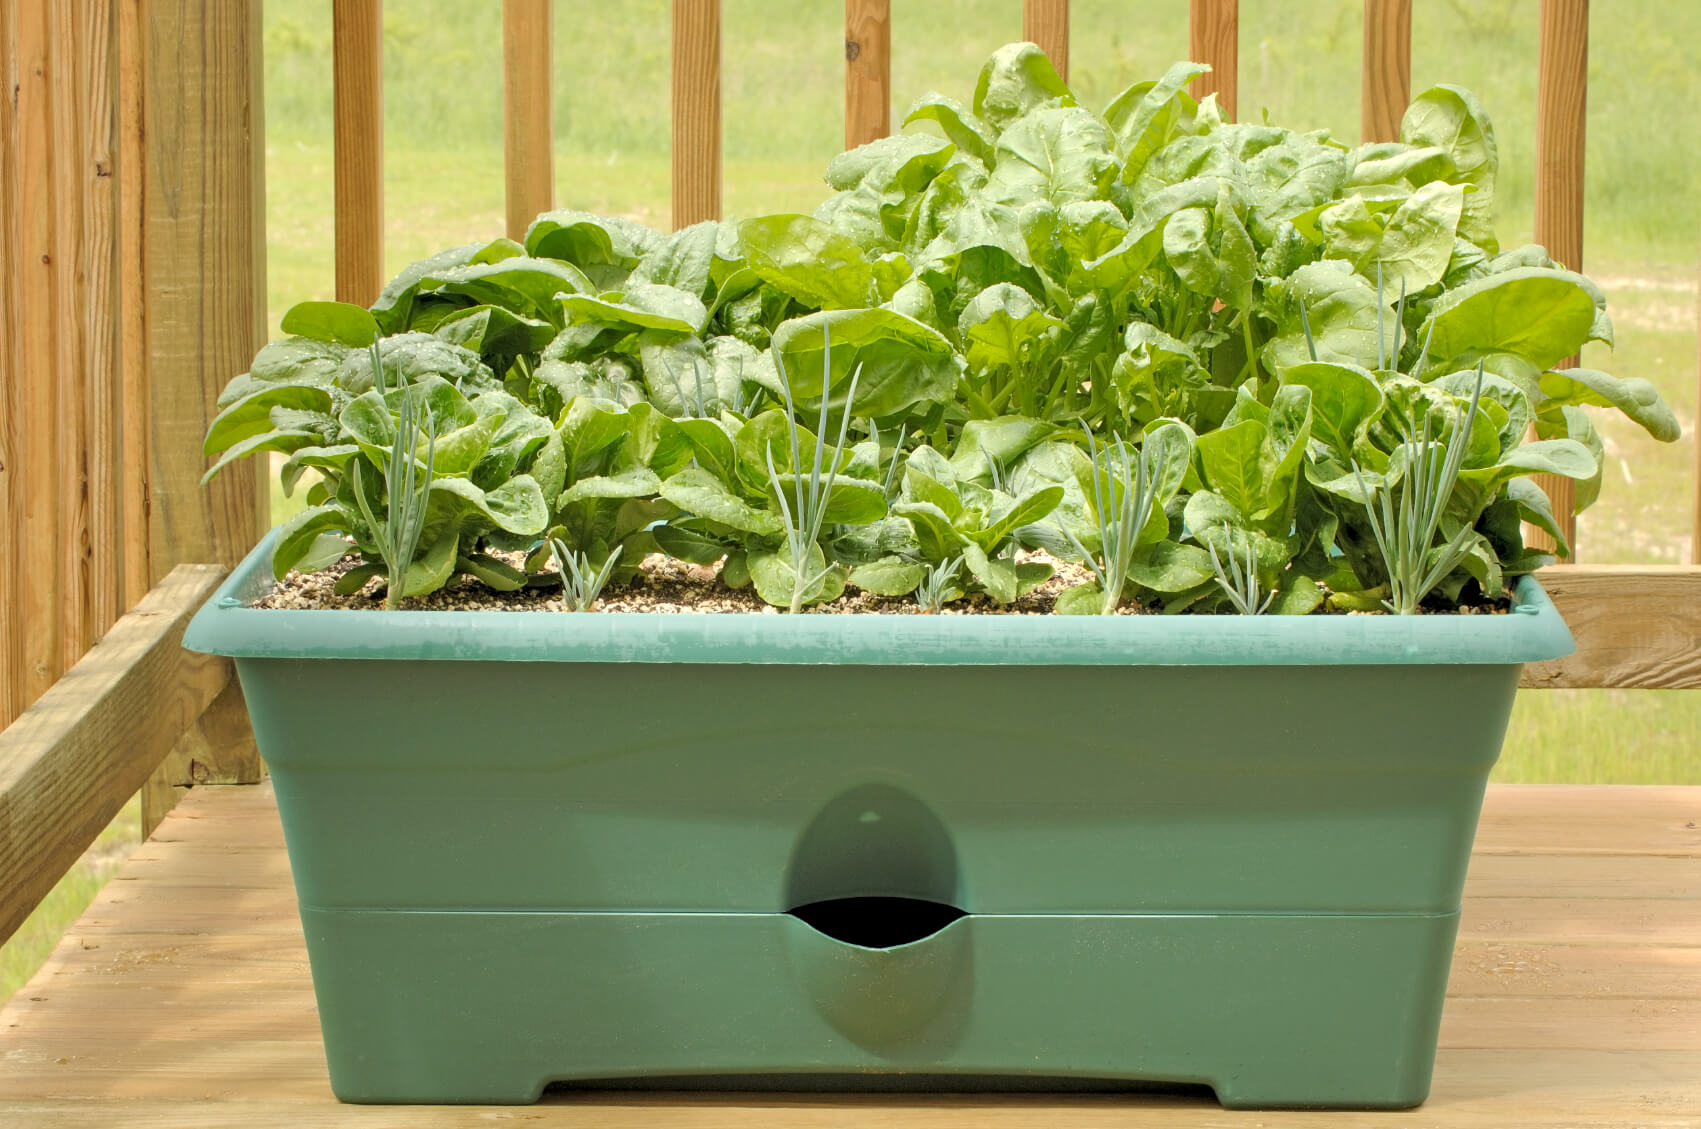 grow spinach in a pot